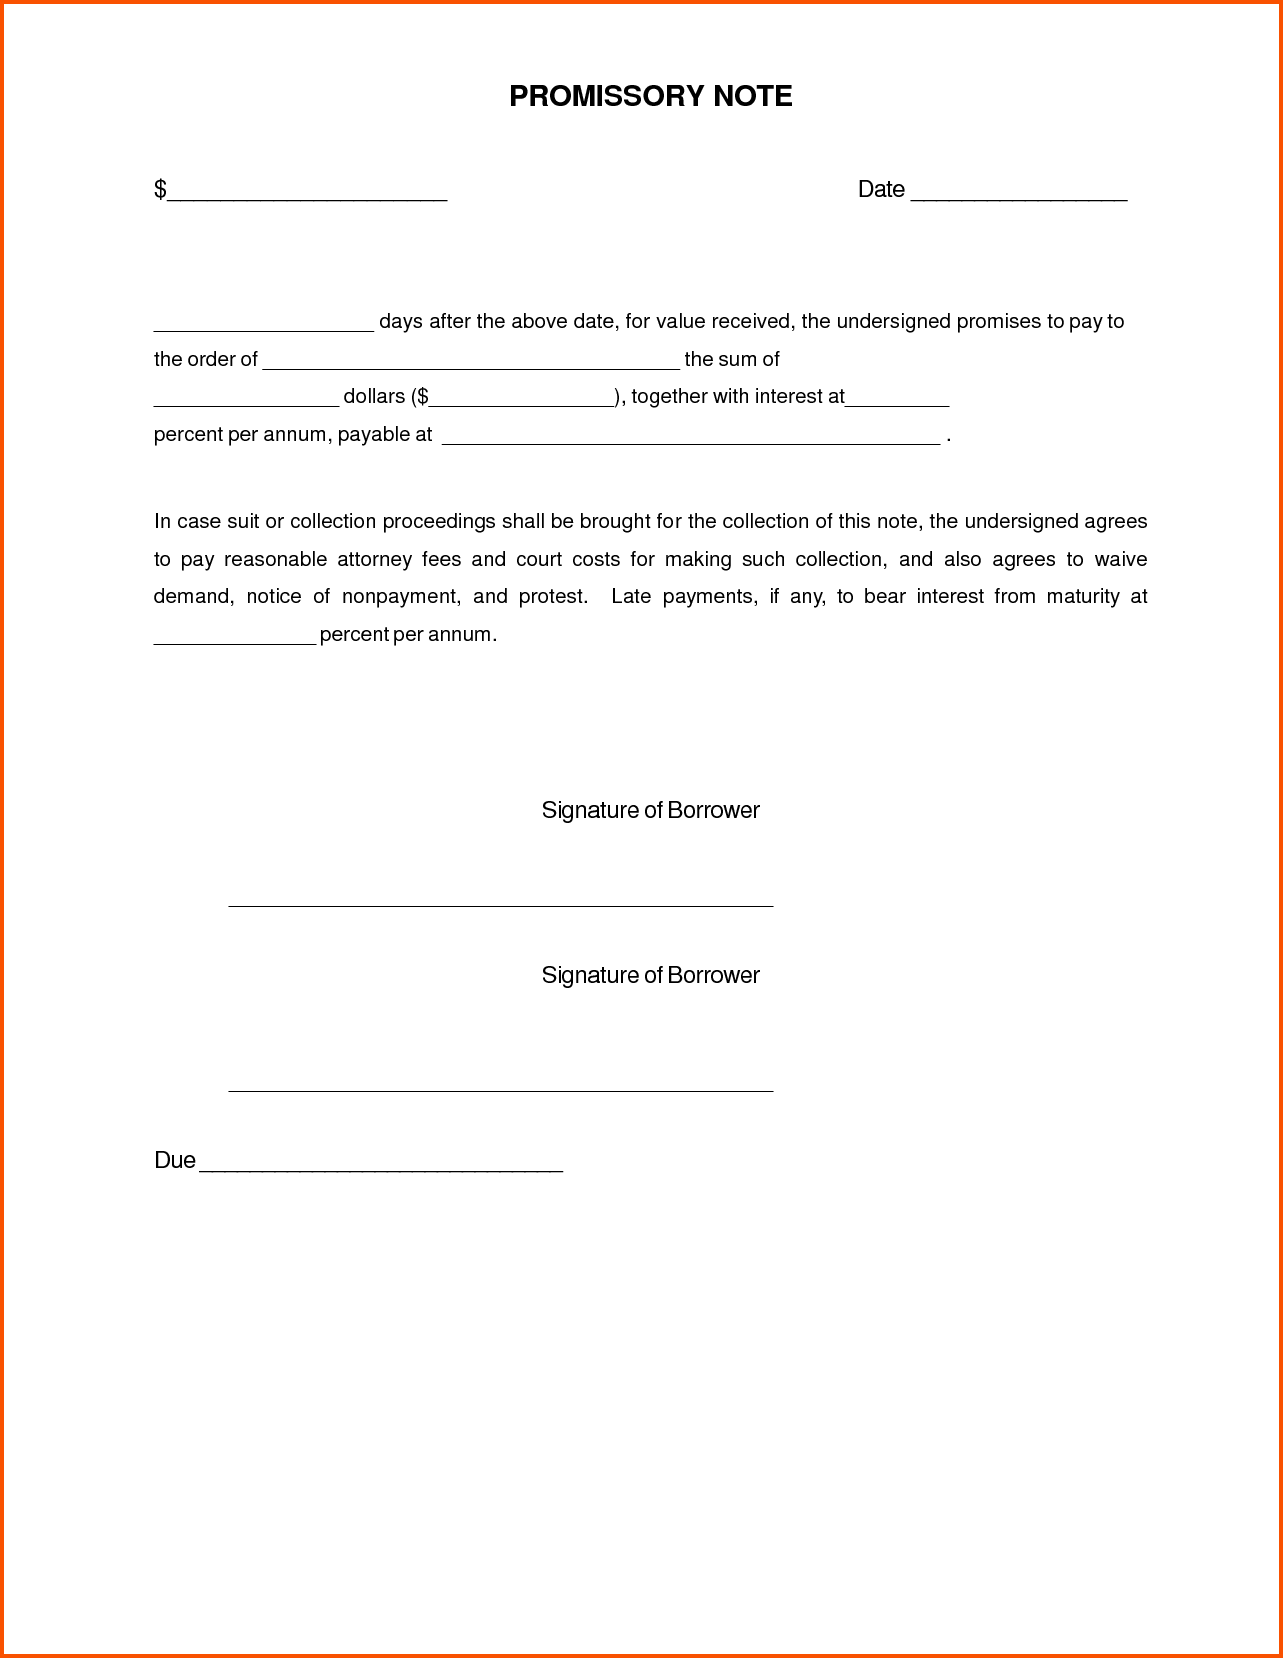 Promissory Note Sample Form Template